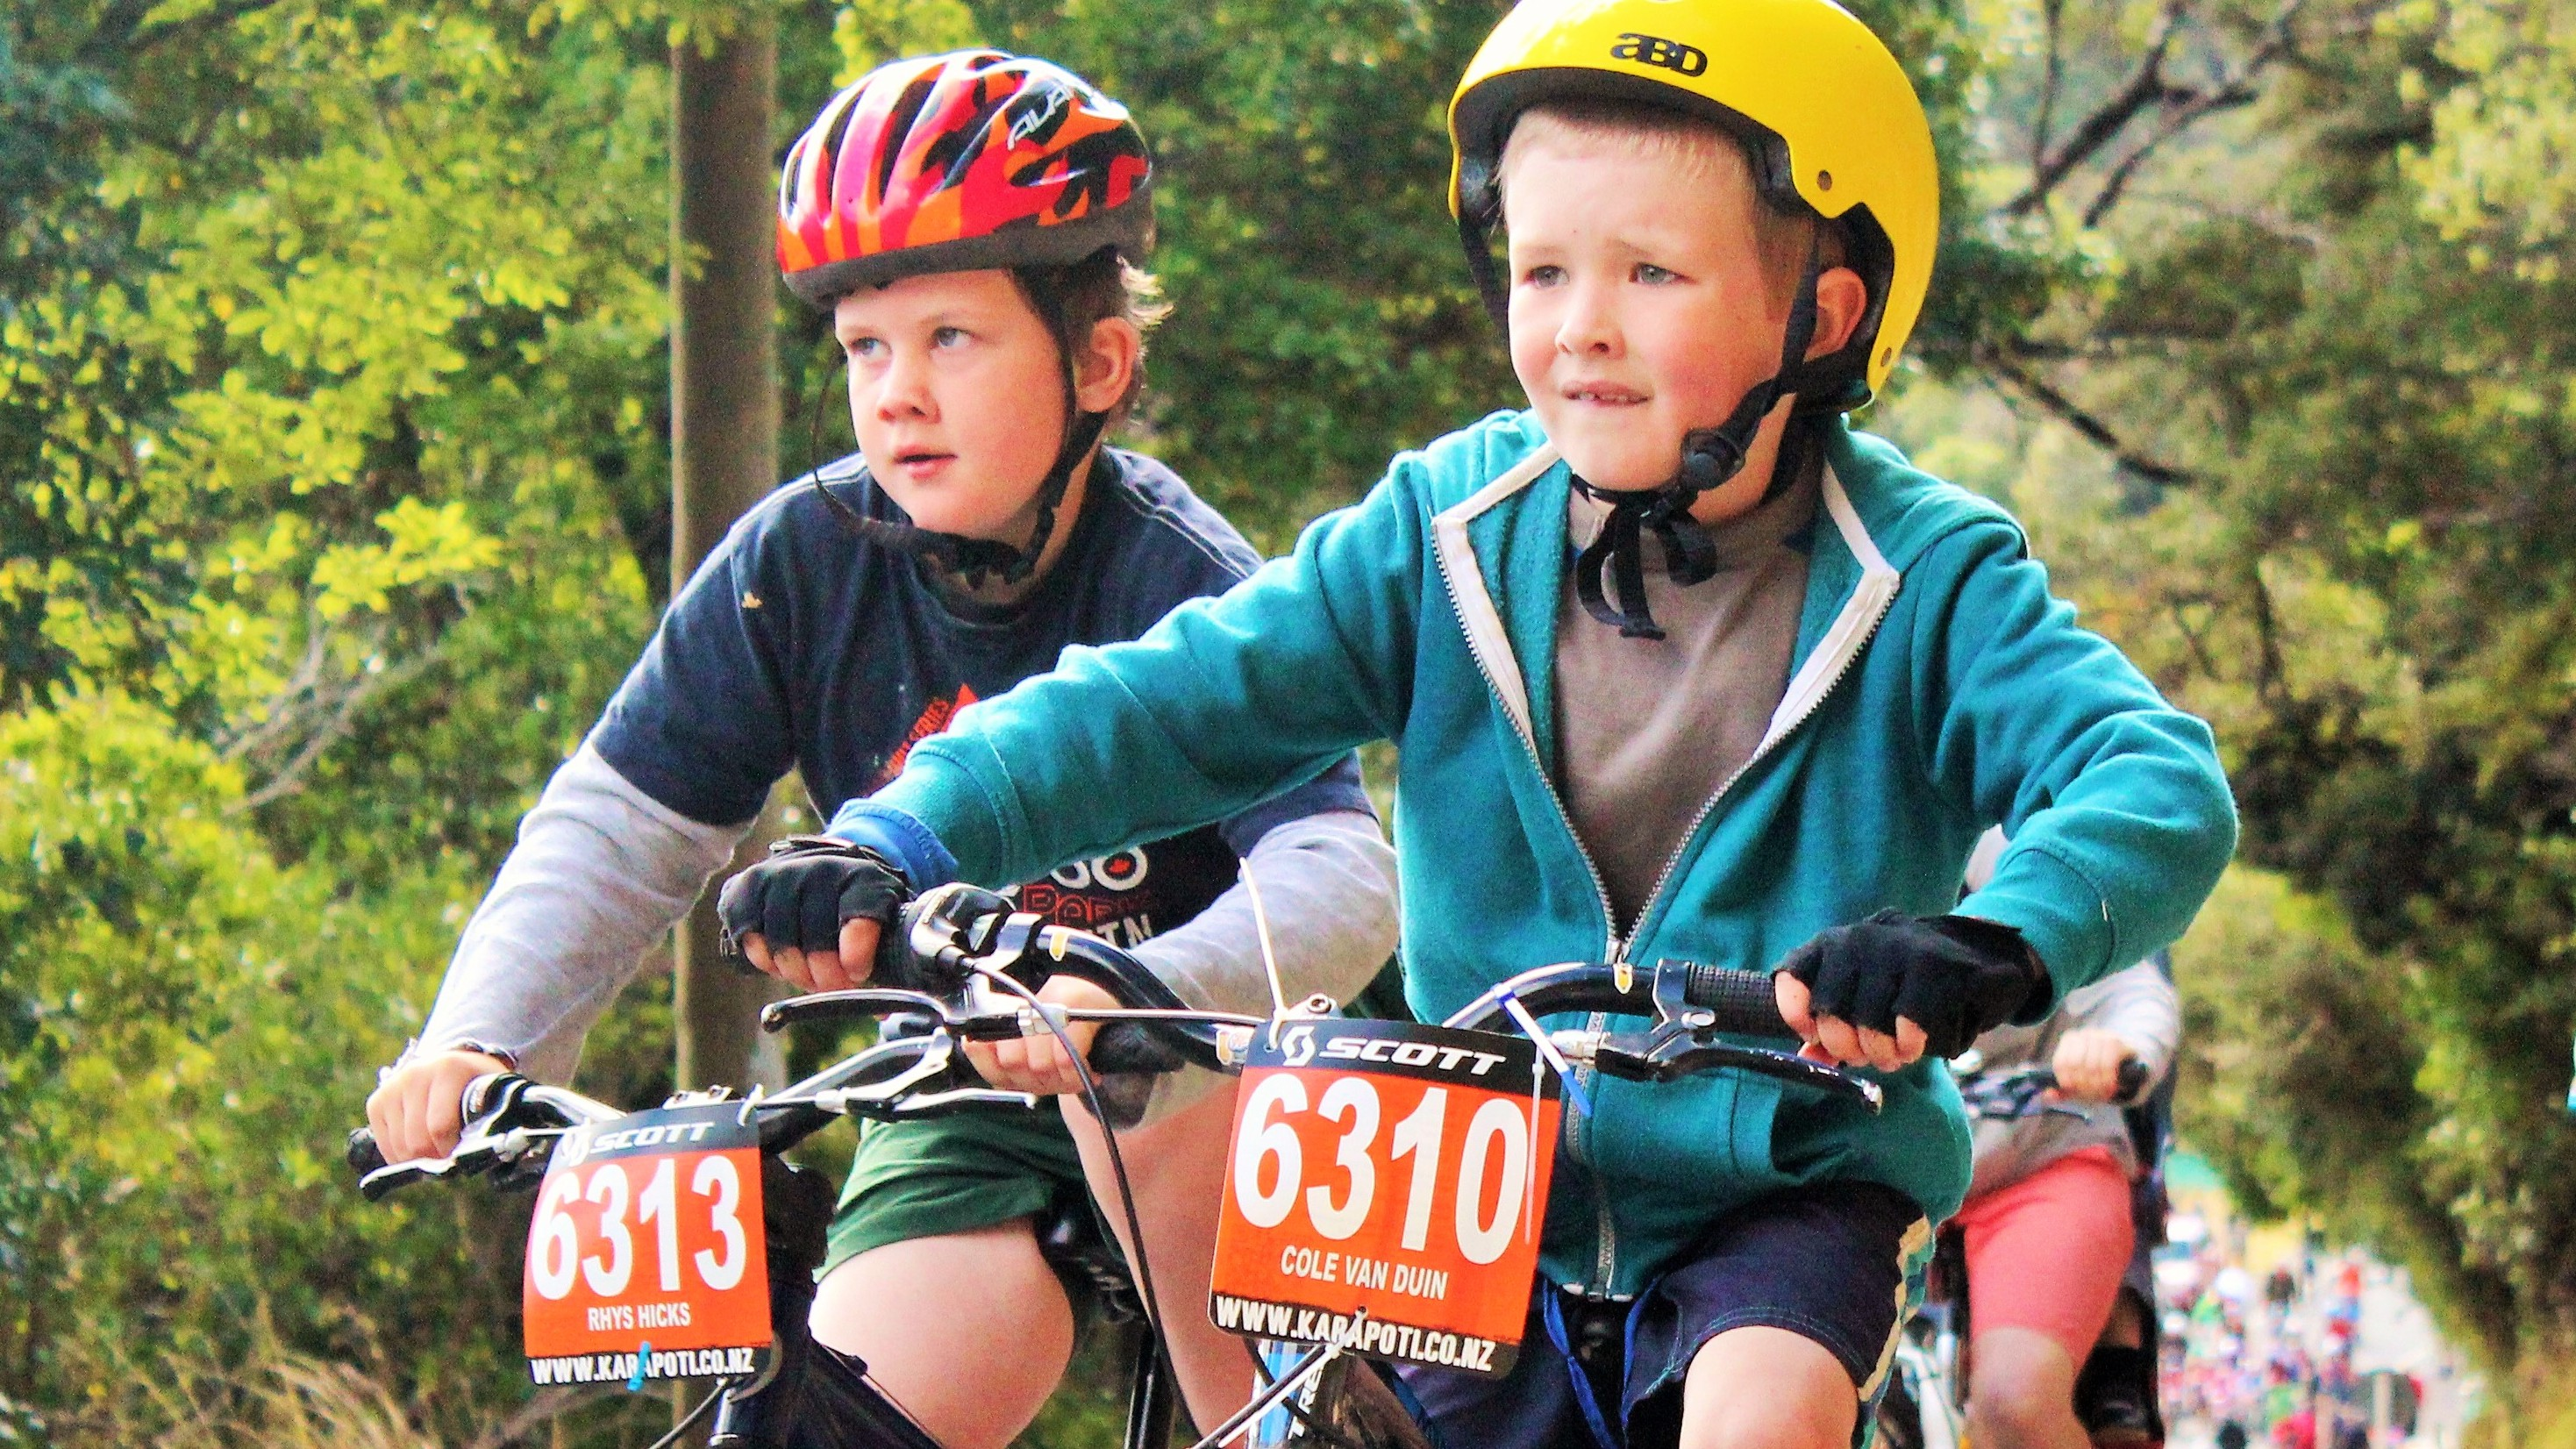 Tomorrow's mtb'ers today in the Kids Klassic